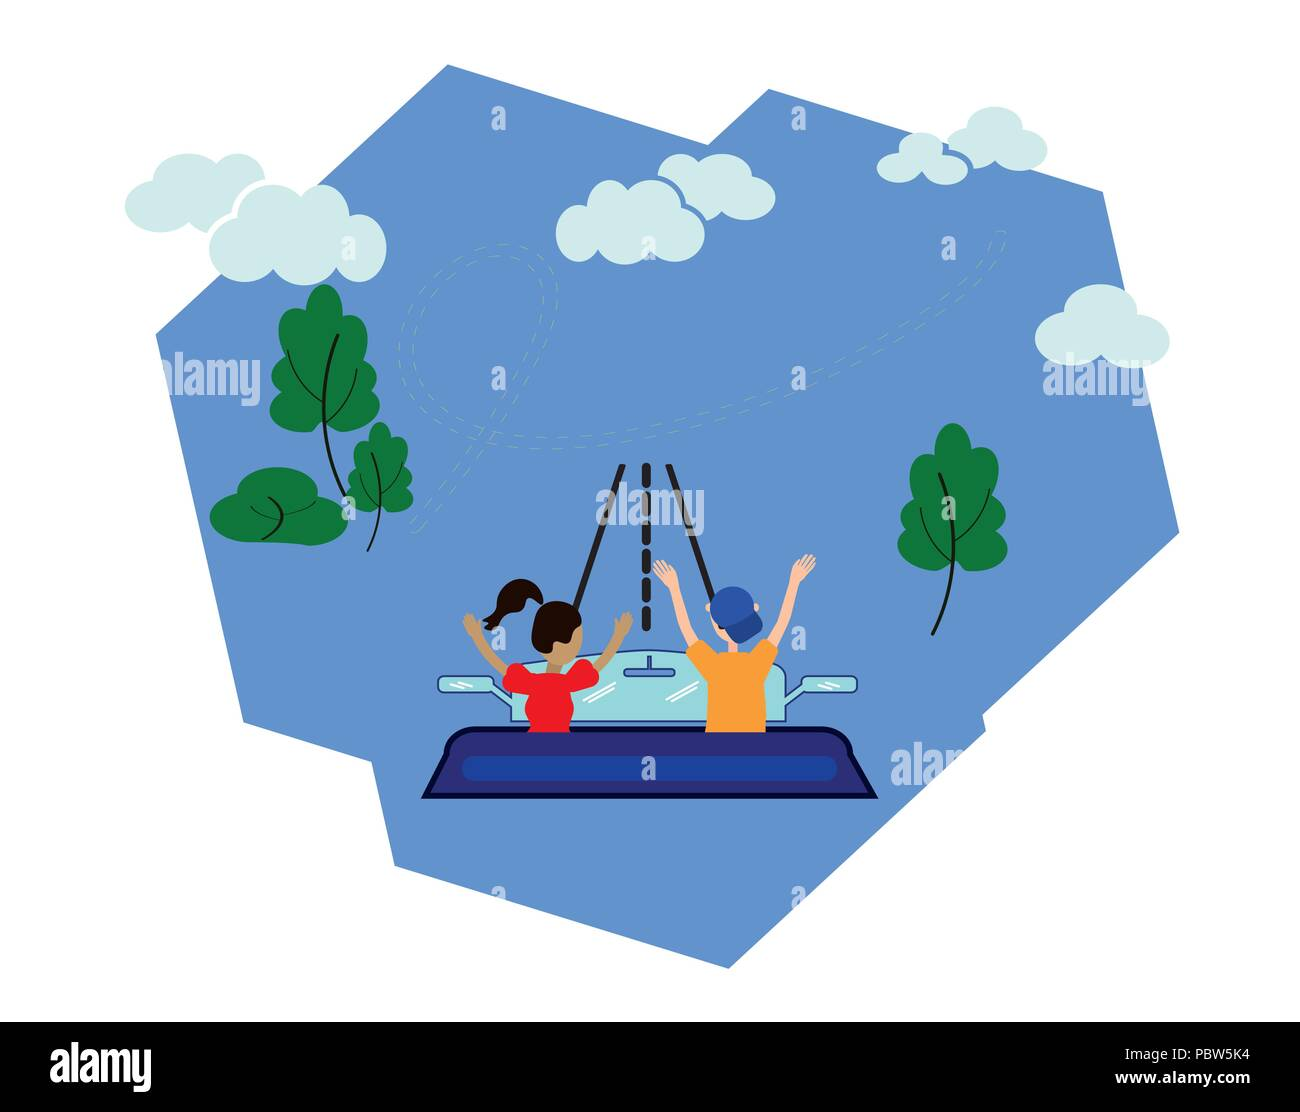 A woman and a man travel by car. Conceptual idea of a flat design of a vector graphic set of illustrations. Navigation, online map on the smartphone, routes, GPS on the city map, mobile application - Stock Vector